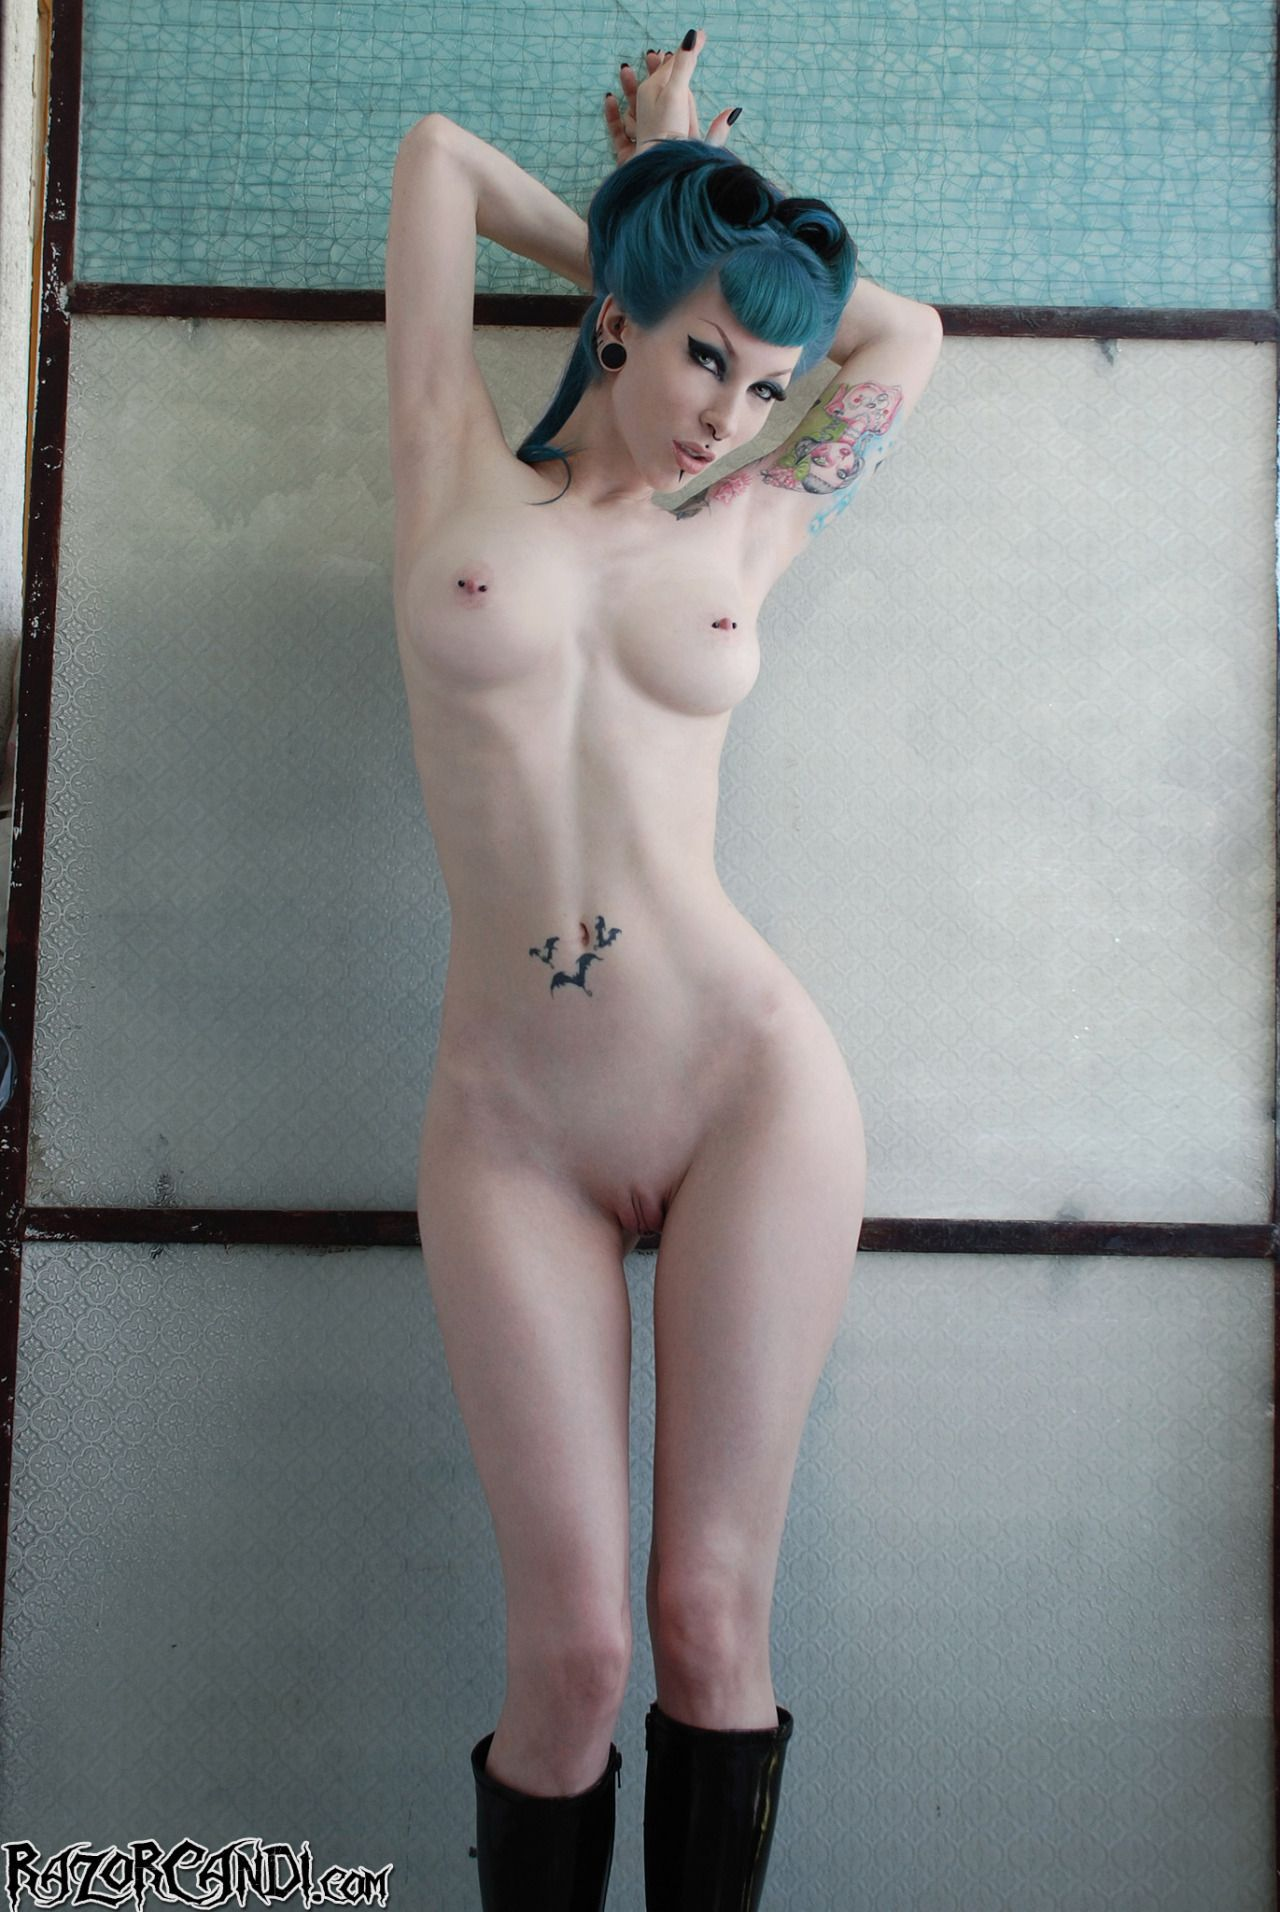 goth-sexy-girl-nude-hot-back-sex-gif